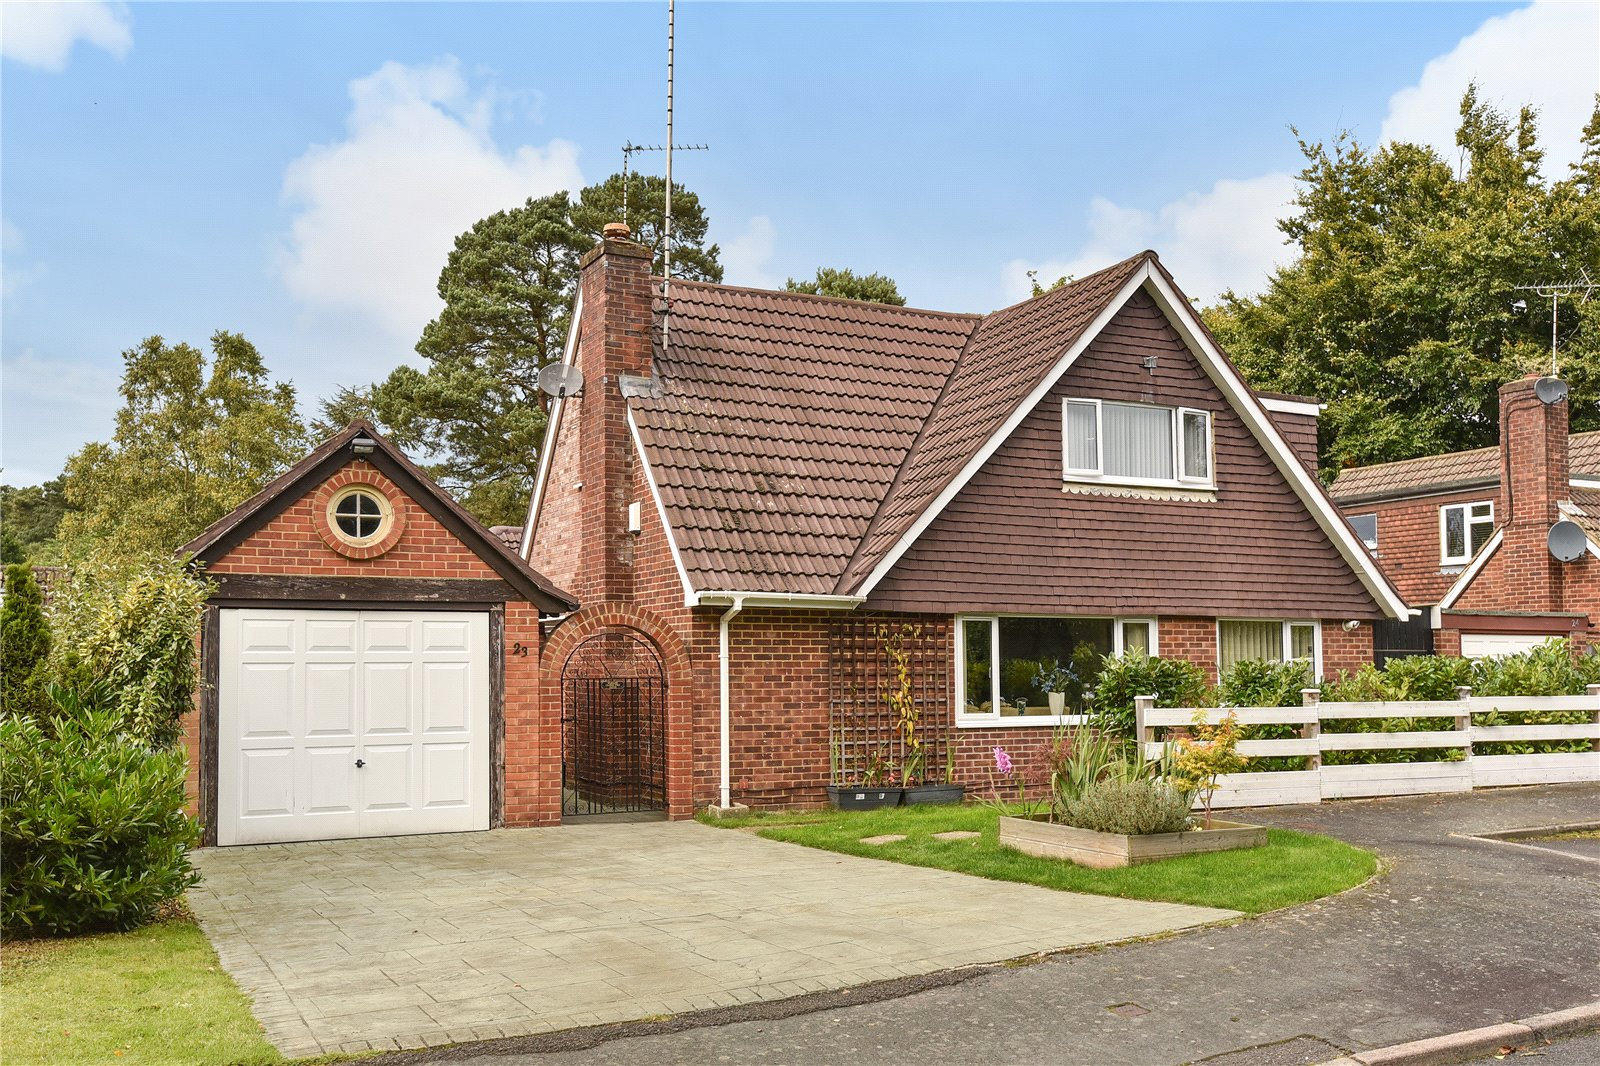 4 Bedrooms House for sale in Tekels Way, Camberley, Surrey, GU15